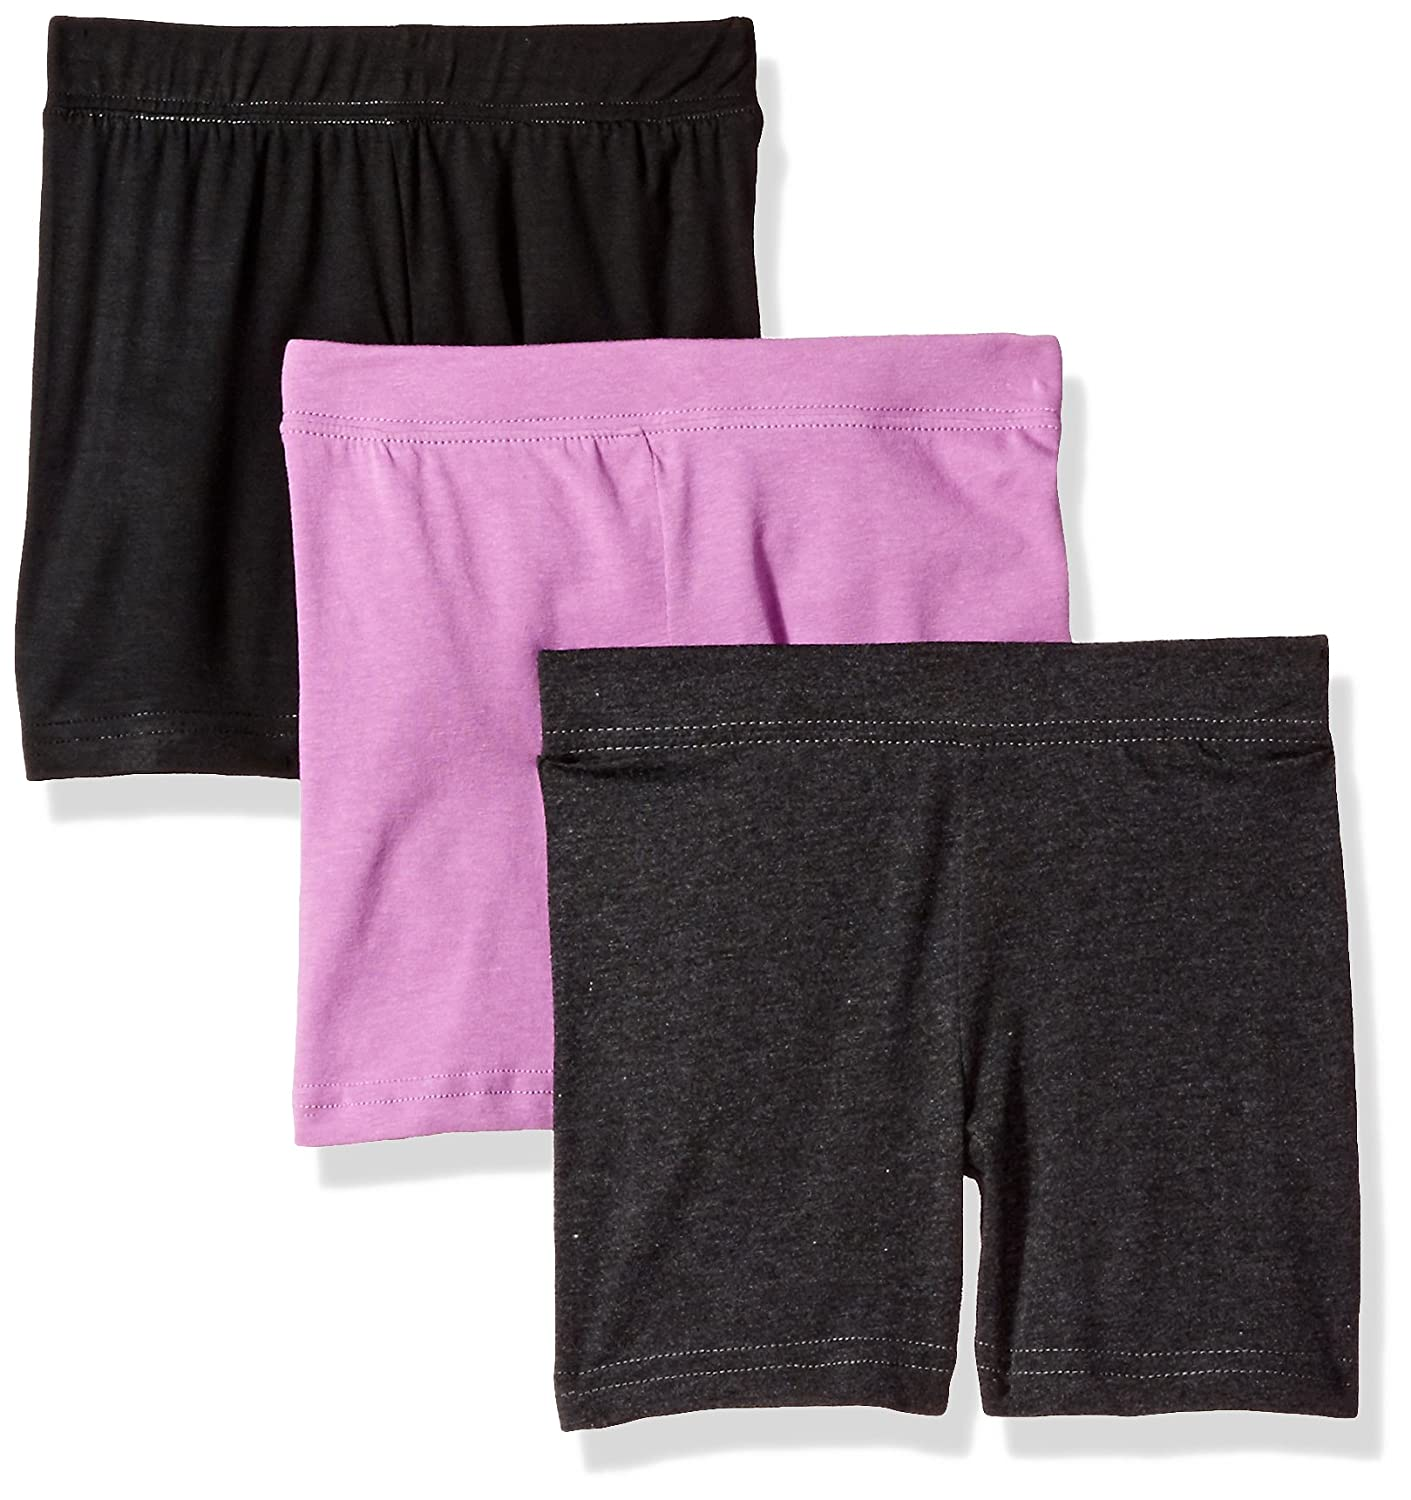 Clementine Apparel Girls Bike Shorts for Girls 3 Pack MG-3763-3PK